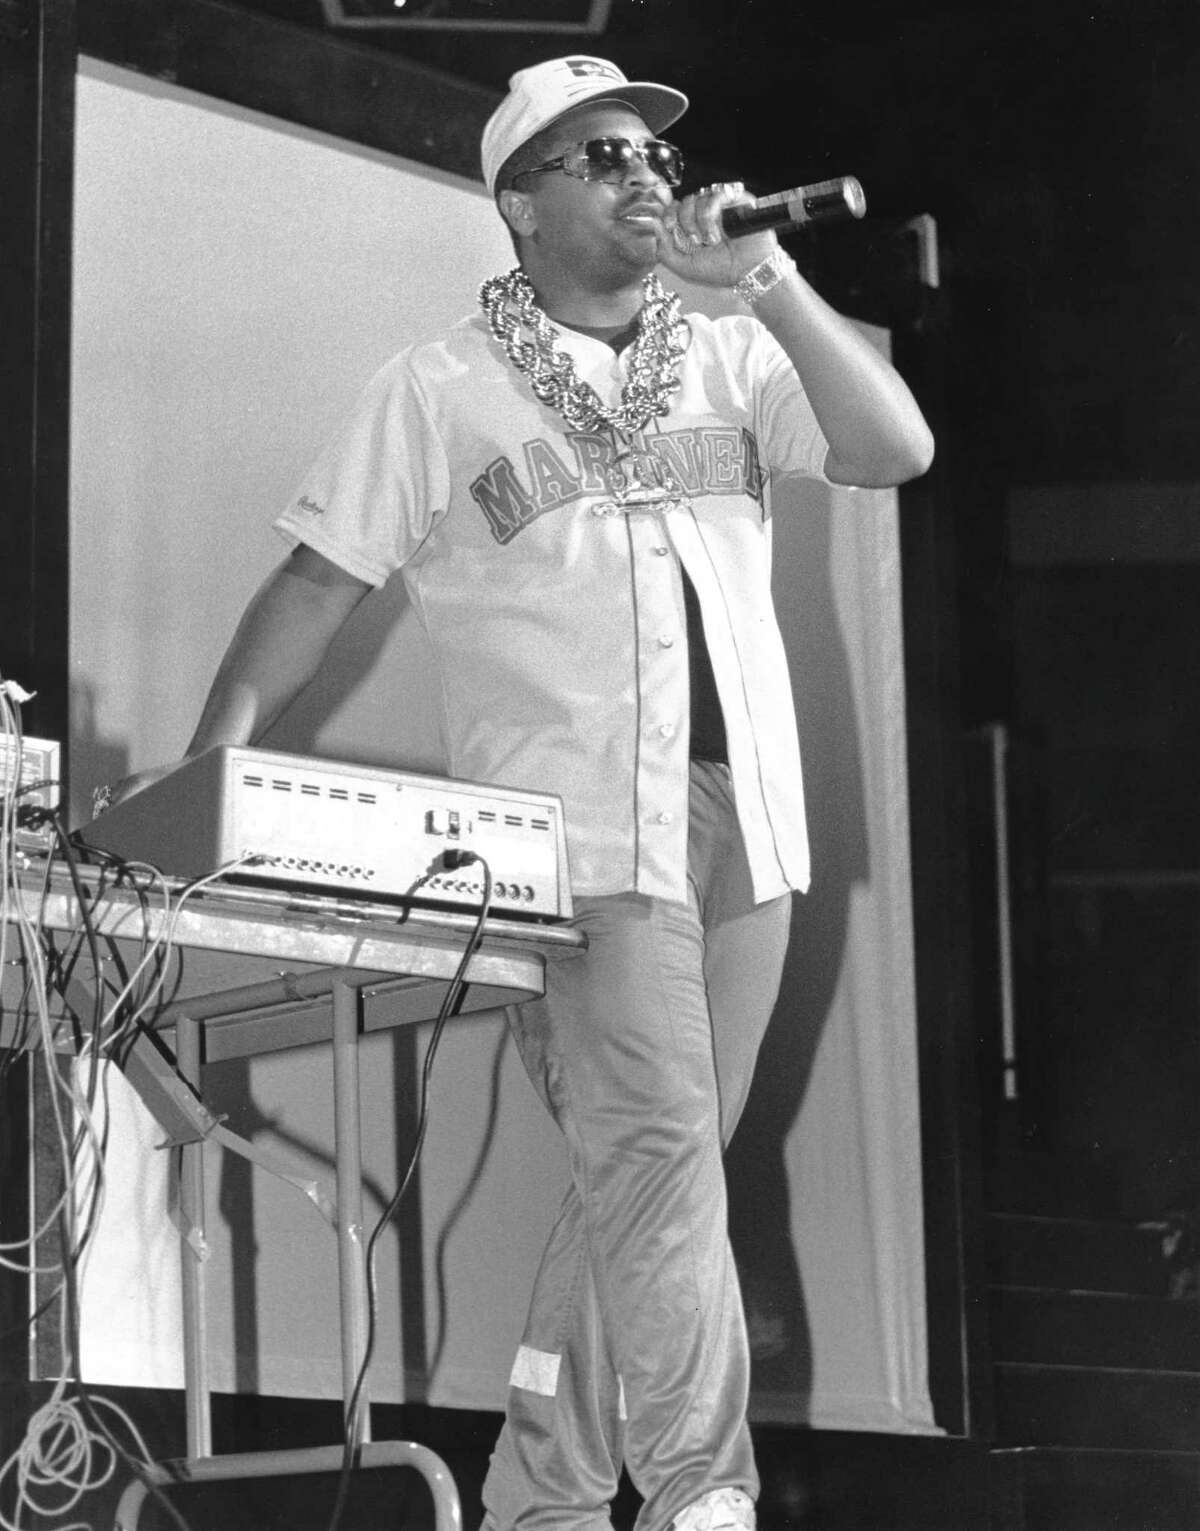 Sir Mix-A-Lot performs onstage wearing a Mariners jersey and a large gold chain in 1989.